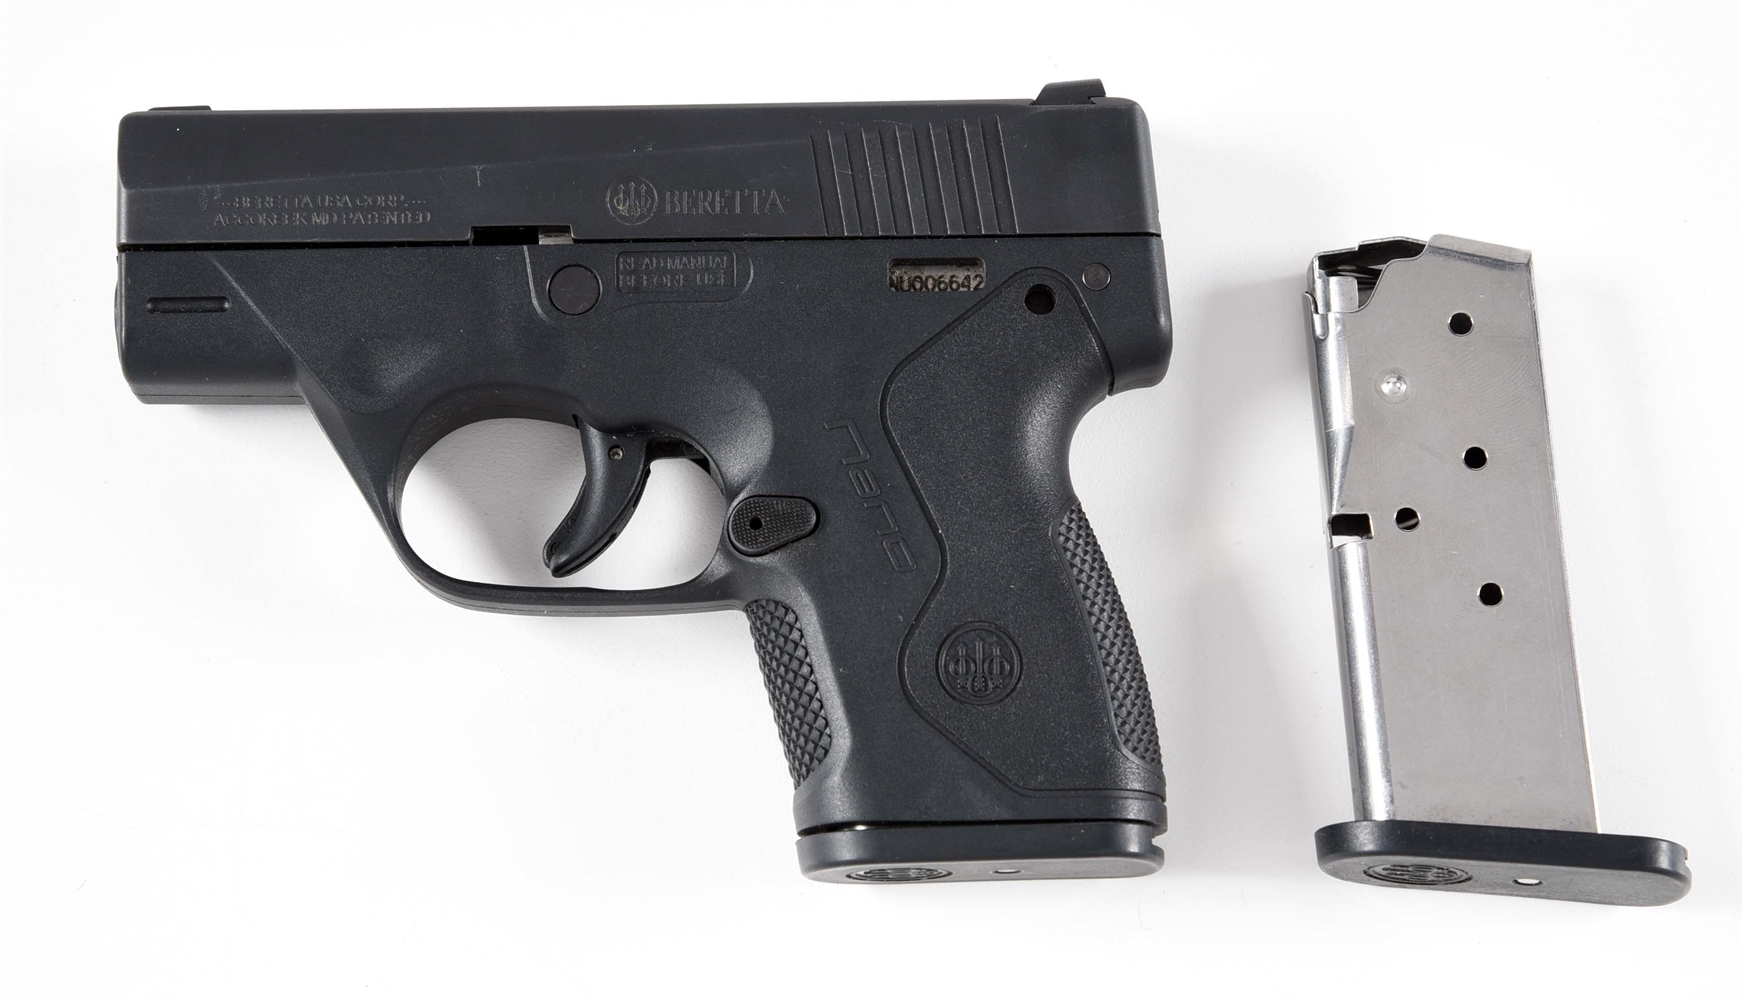 (M) BERETTA NANO SEMI-AUTOMATIC PISTOL WITH PLAIN BLACK SLEEVE AND EXTRA MAGAZINE.